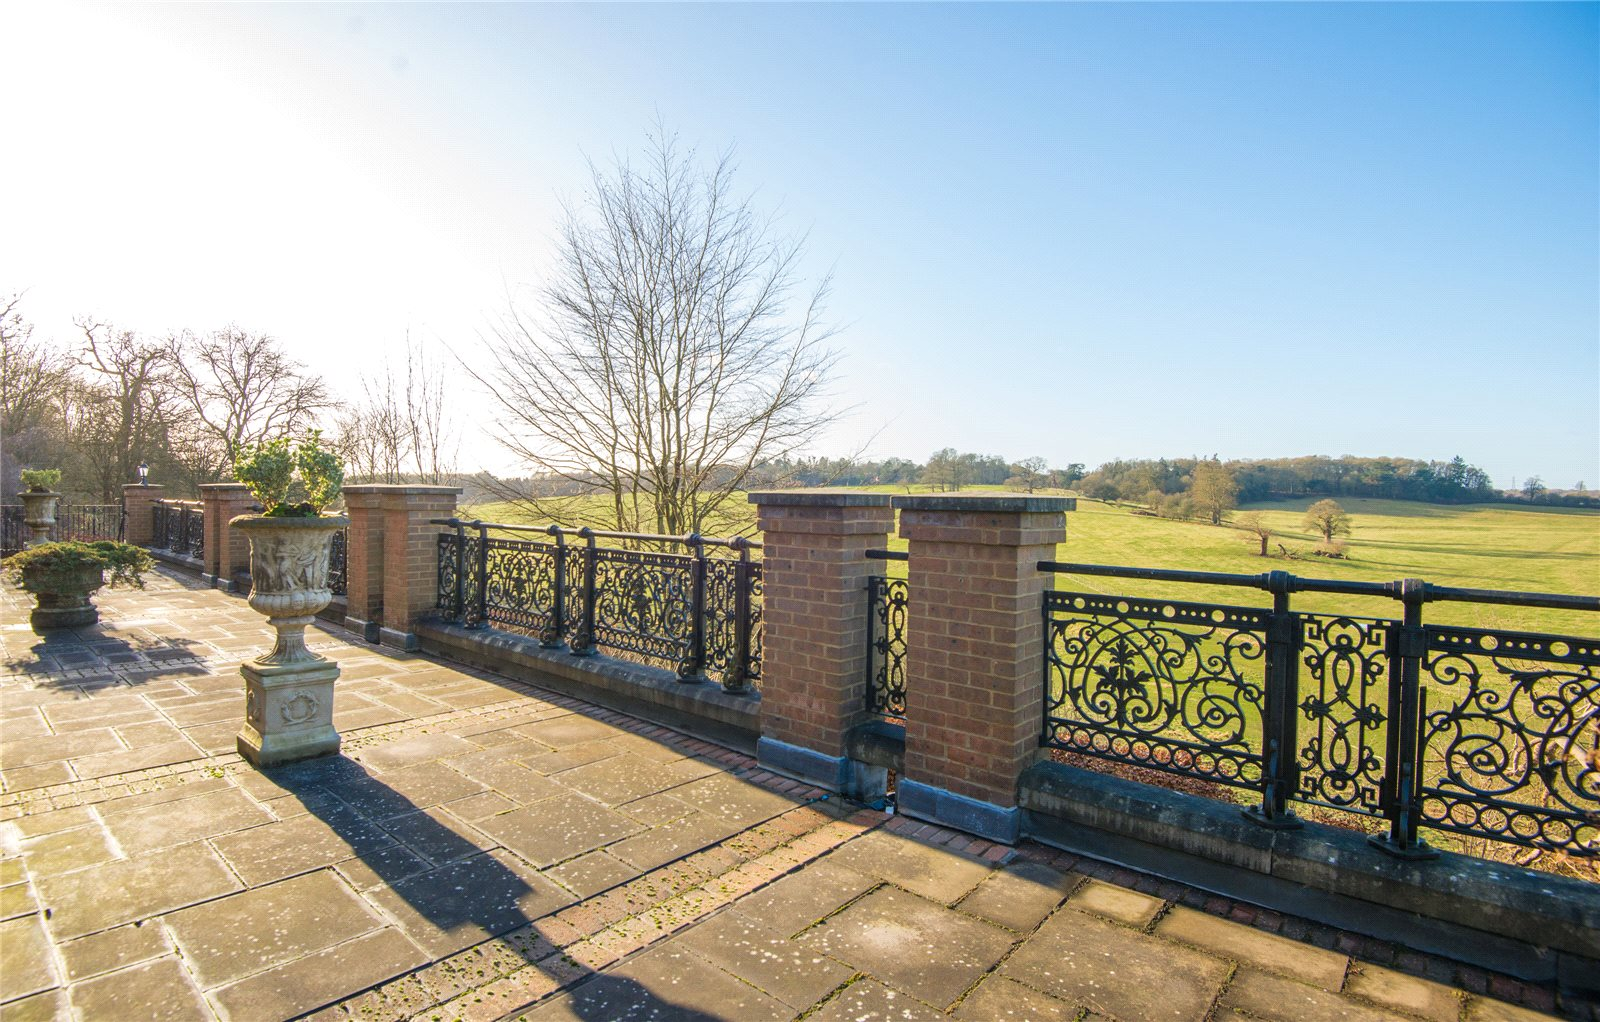 Additional photo for property listing at Main Drive, Gerrards Cross, Buckinghamshire, SL9 Gerrards Cross, Αγγλια